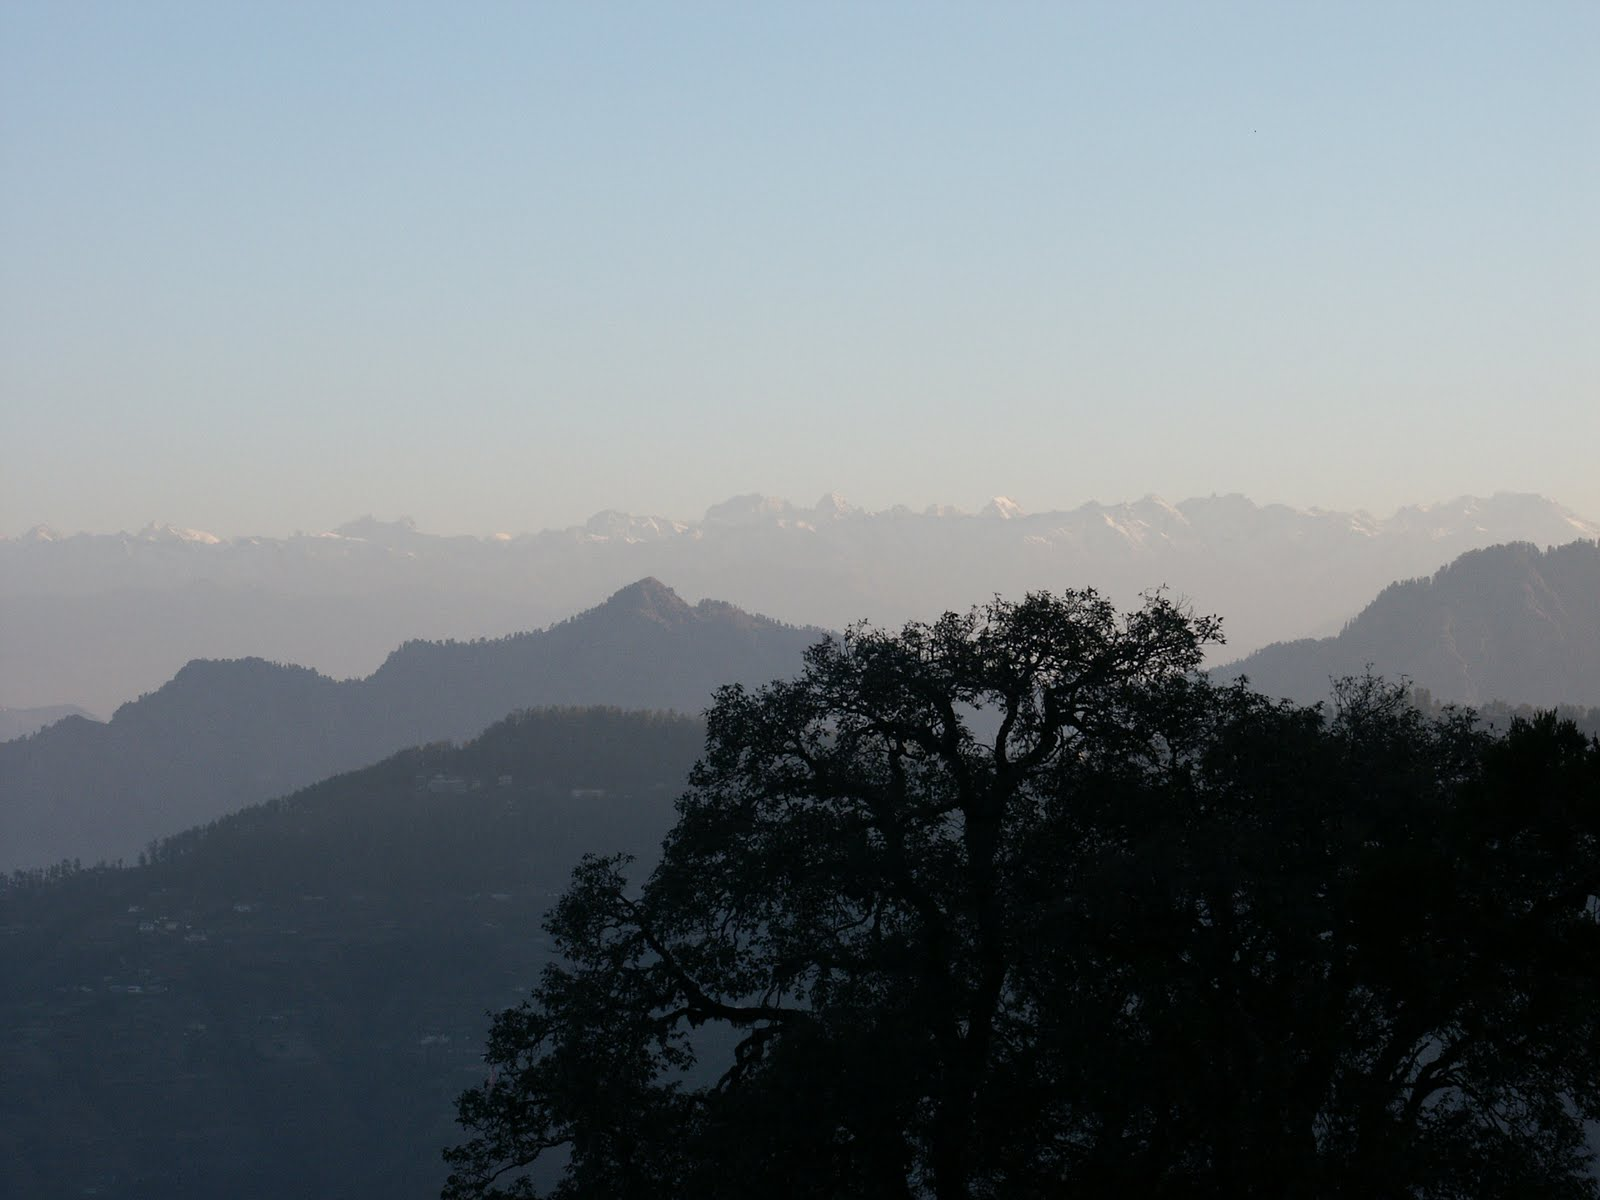 a visit to a hill station shimla One of the most popular hill stations near delhi, manali lies amid the lush beas river valley at an altitude of 6260 feet above the sea level this hill town is nestled at the end of the kullu valley along the banks of river beas.